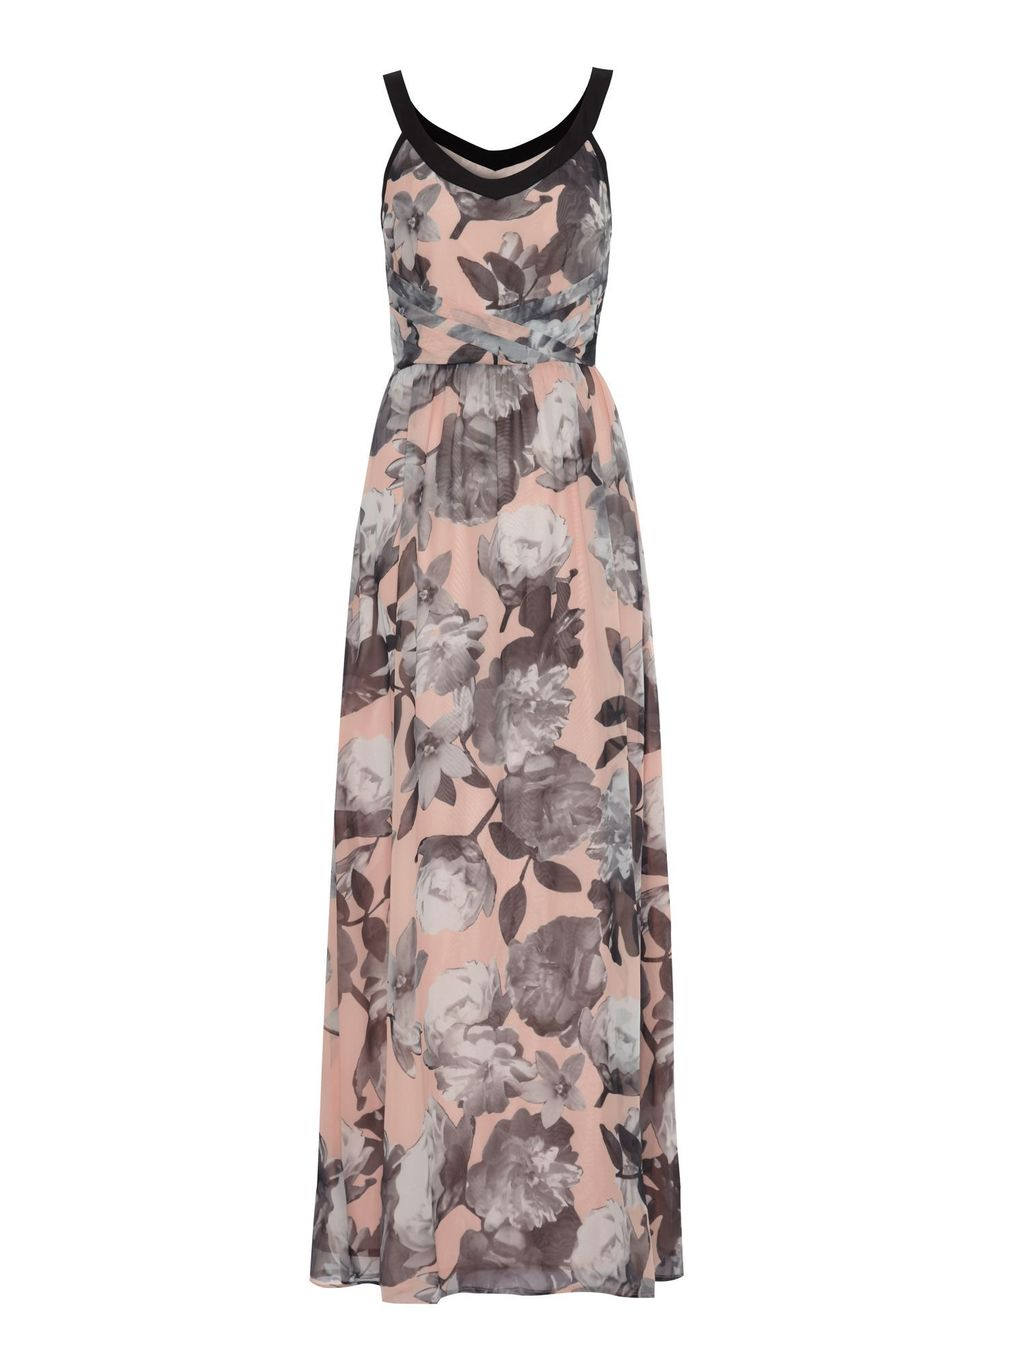 Cherry Blossom Print Maxi Dress, Nude - neckline: low v-neck; fit: fitted at waist; sleeve style: sleeveless; style: maxi dress; predominant colour: blush; secondary colour: mid grey; occasions: evening, occasion; length: floor length; sleeve length: sleeveless; pattern type: fabric; pattern: florals; texture group: woven light midweight; season: s/s 2015; wardrobe: event